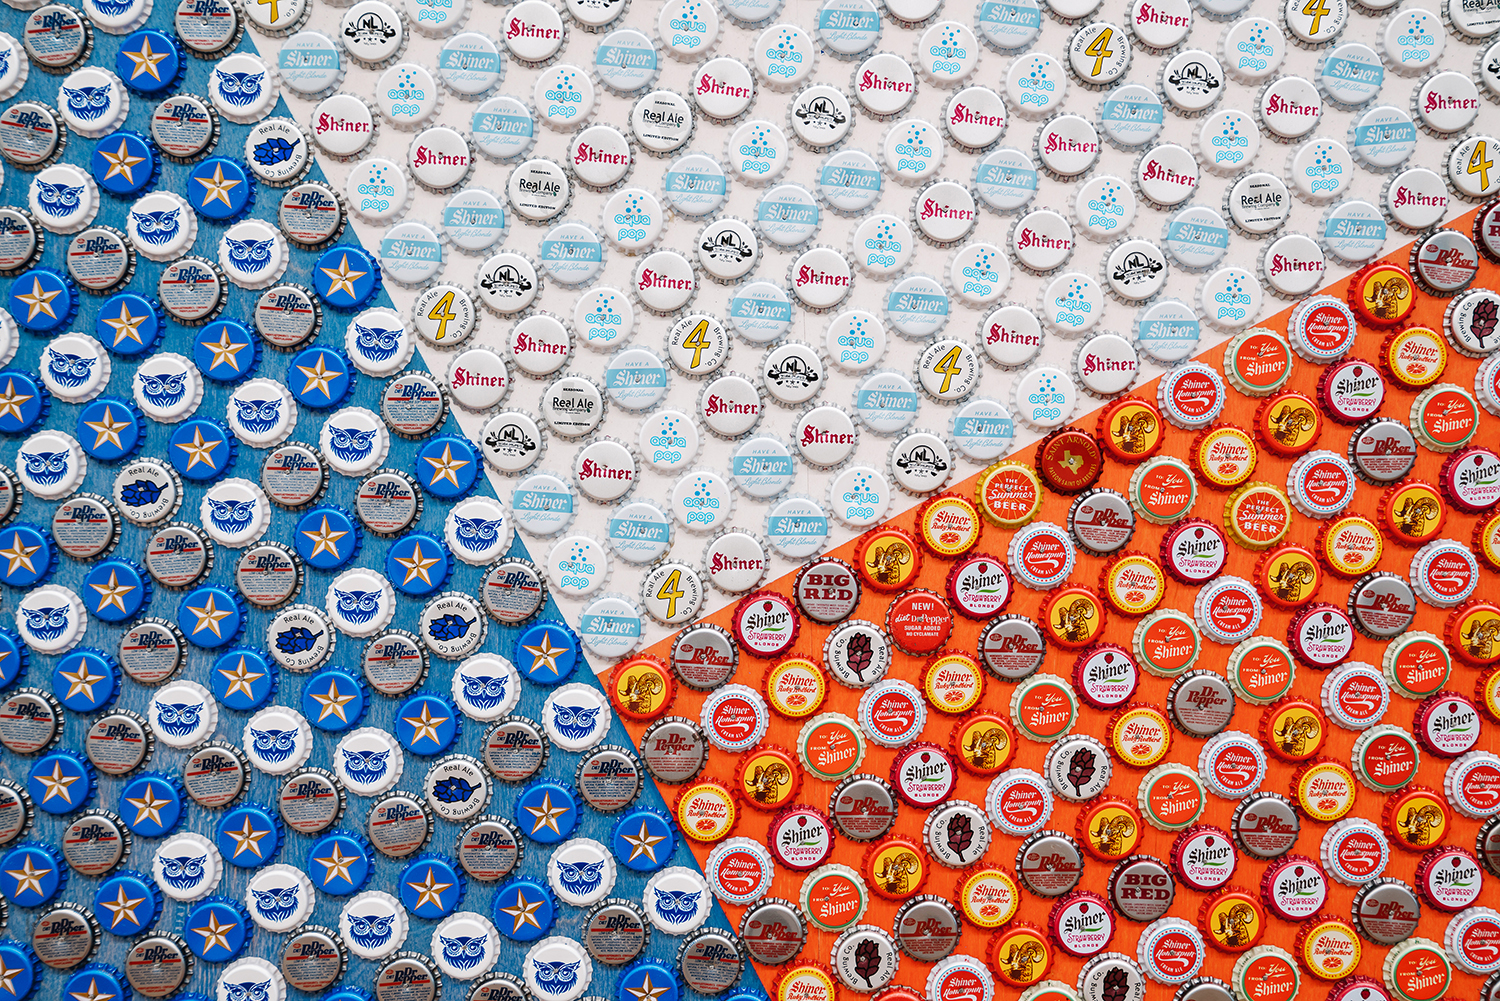 AGD_Oracle_P1_SBG_Flag2_Bottlecaps_Detail.jpg